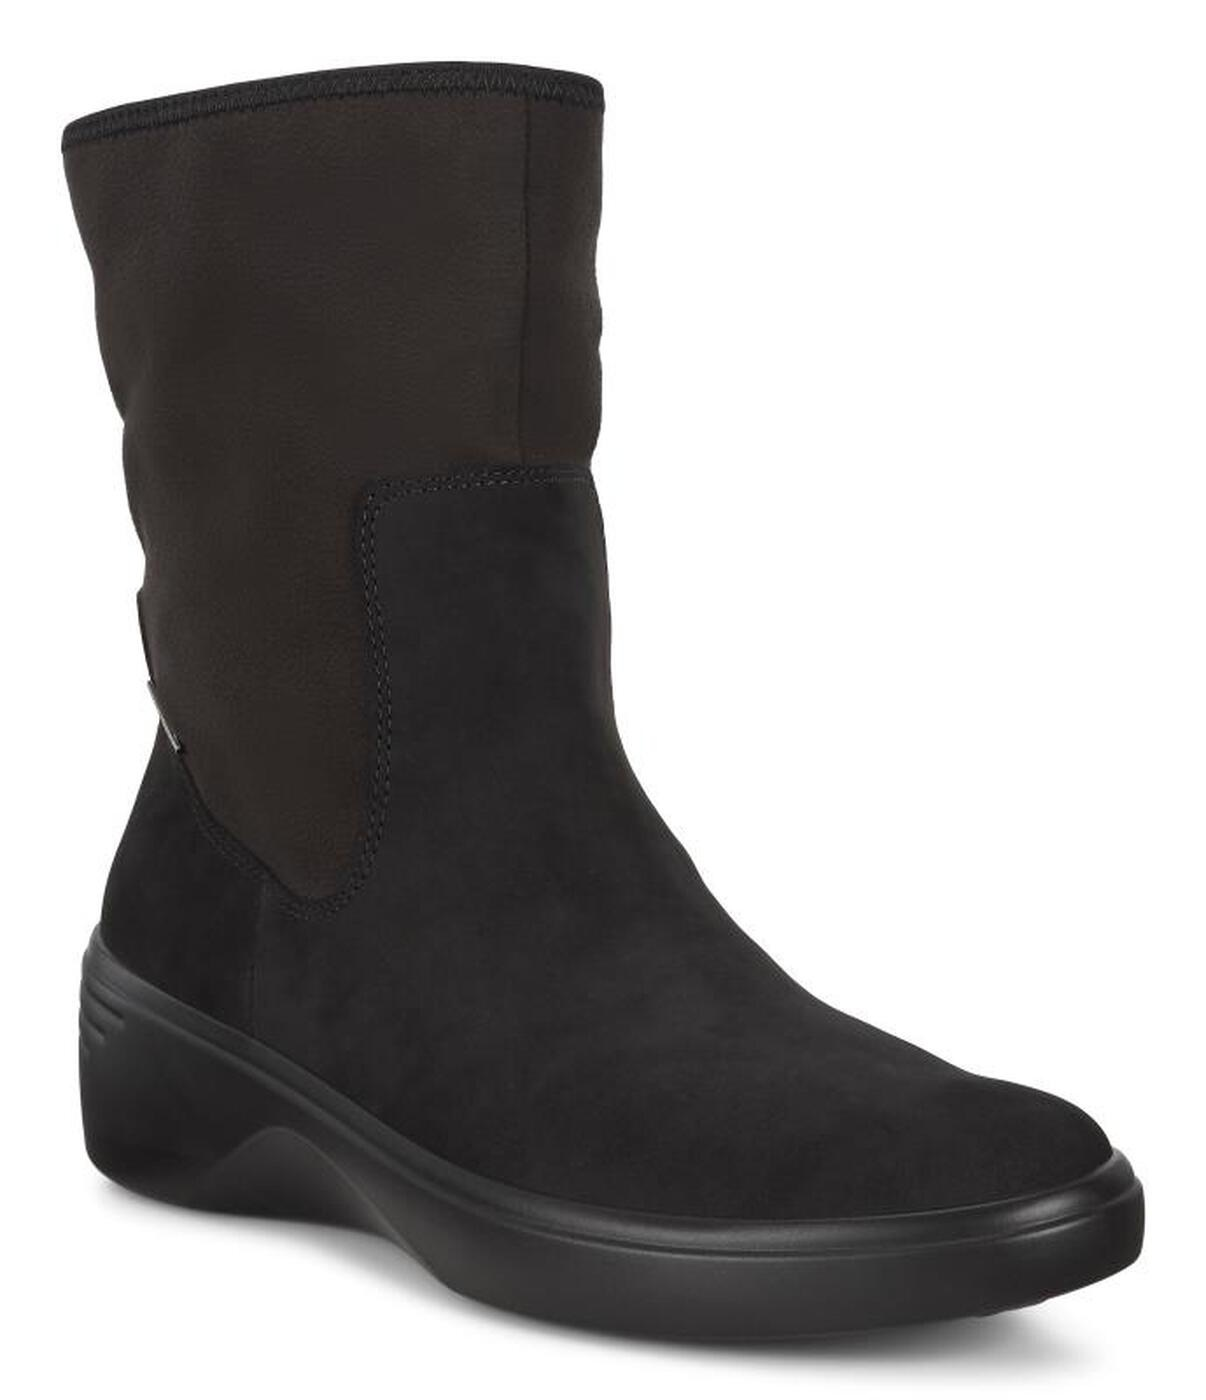 ECCO SOFT 7 WEDGE W MID BOOT